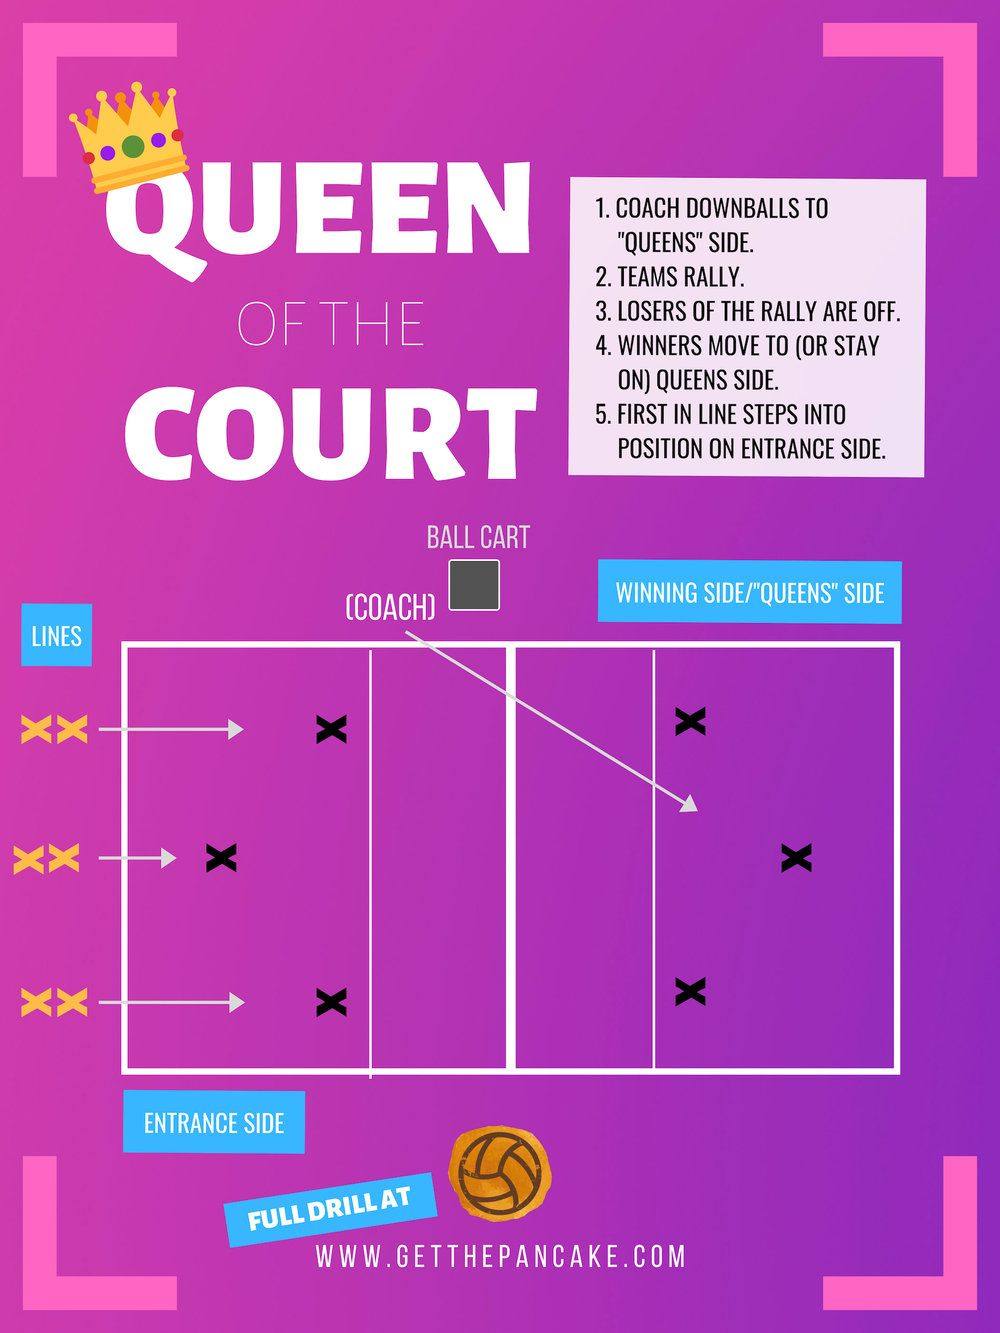 Volleyball Drill Classics Queen Of The Court Volleyball Drills Volleyball Workouts Coaching Volleyball